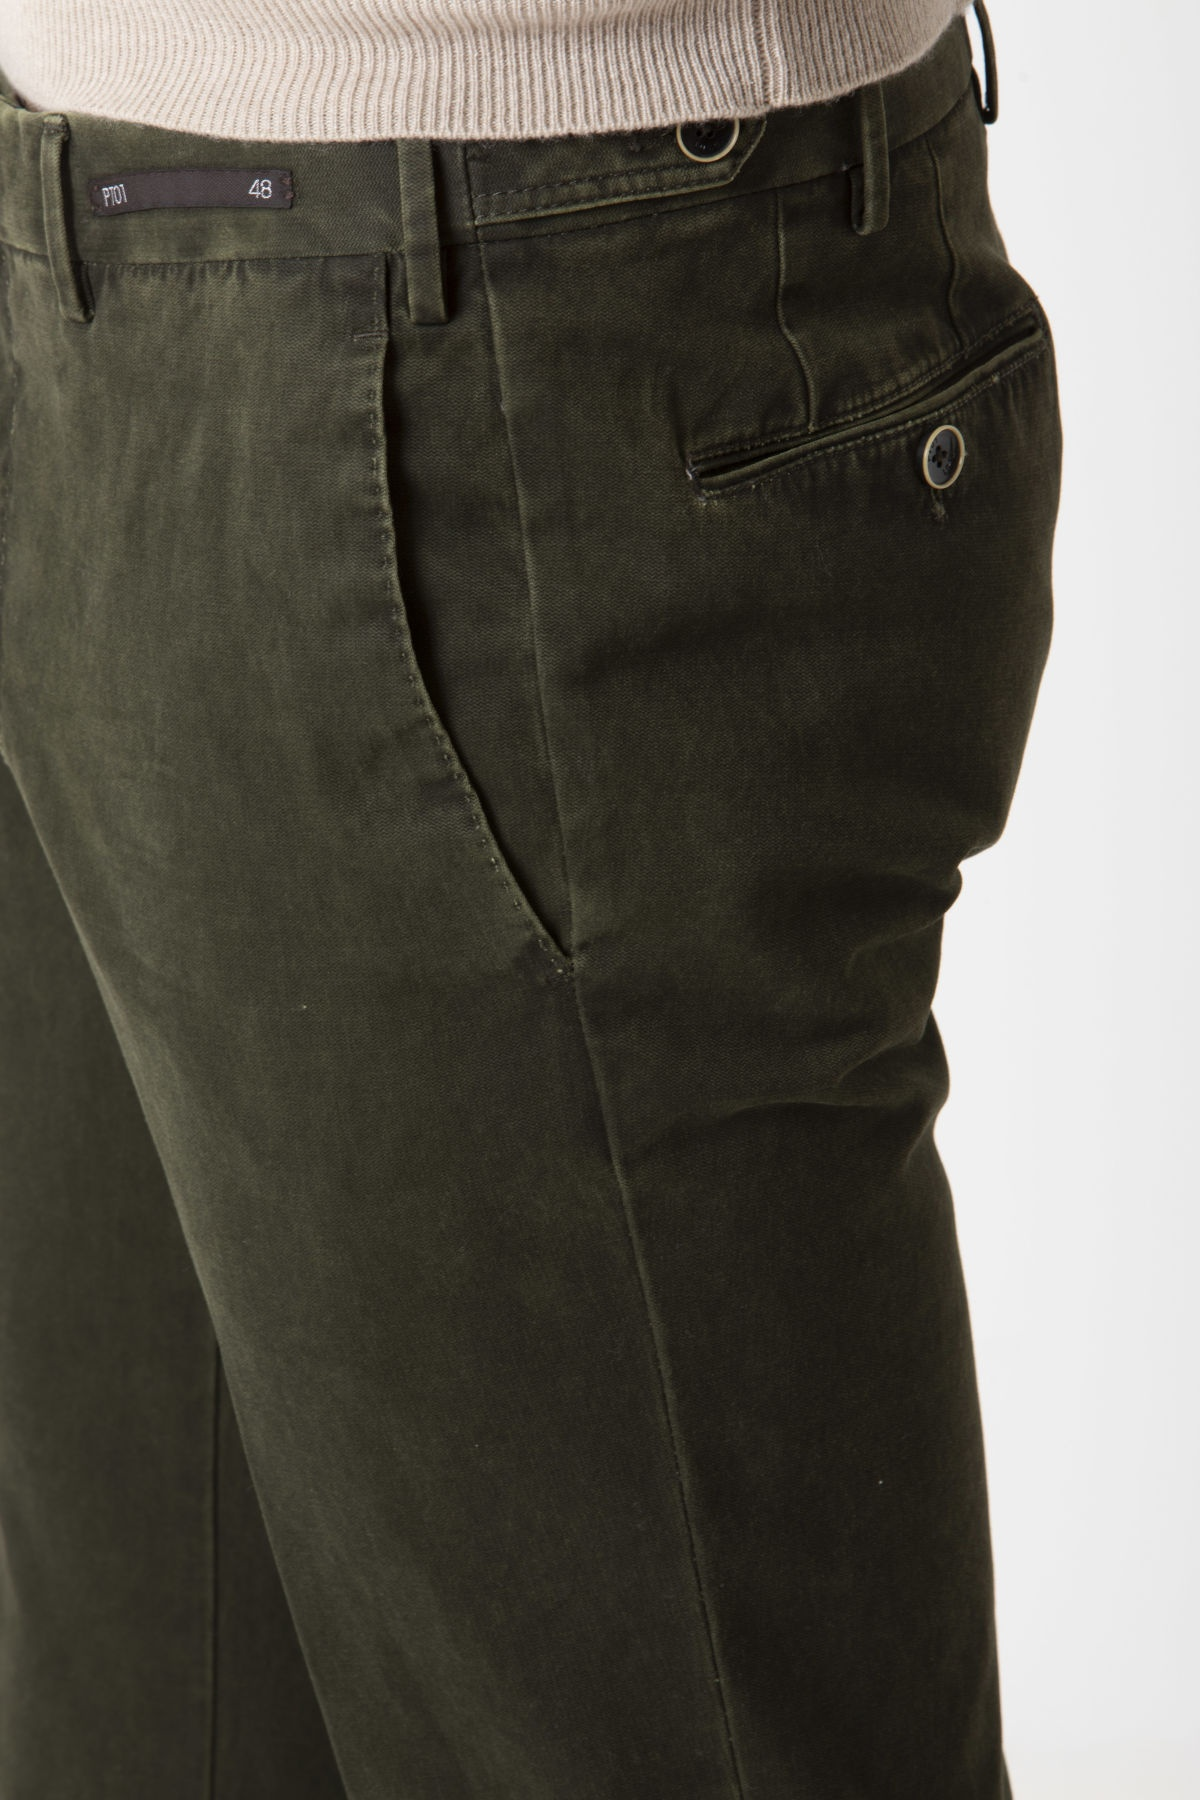 HEPCAT Trousers for man PT01 F/W 19-20